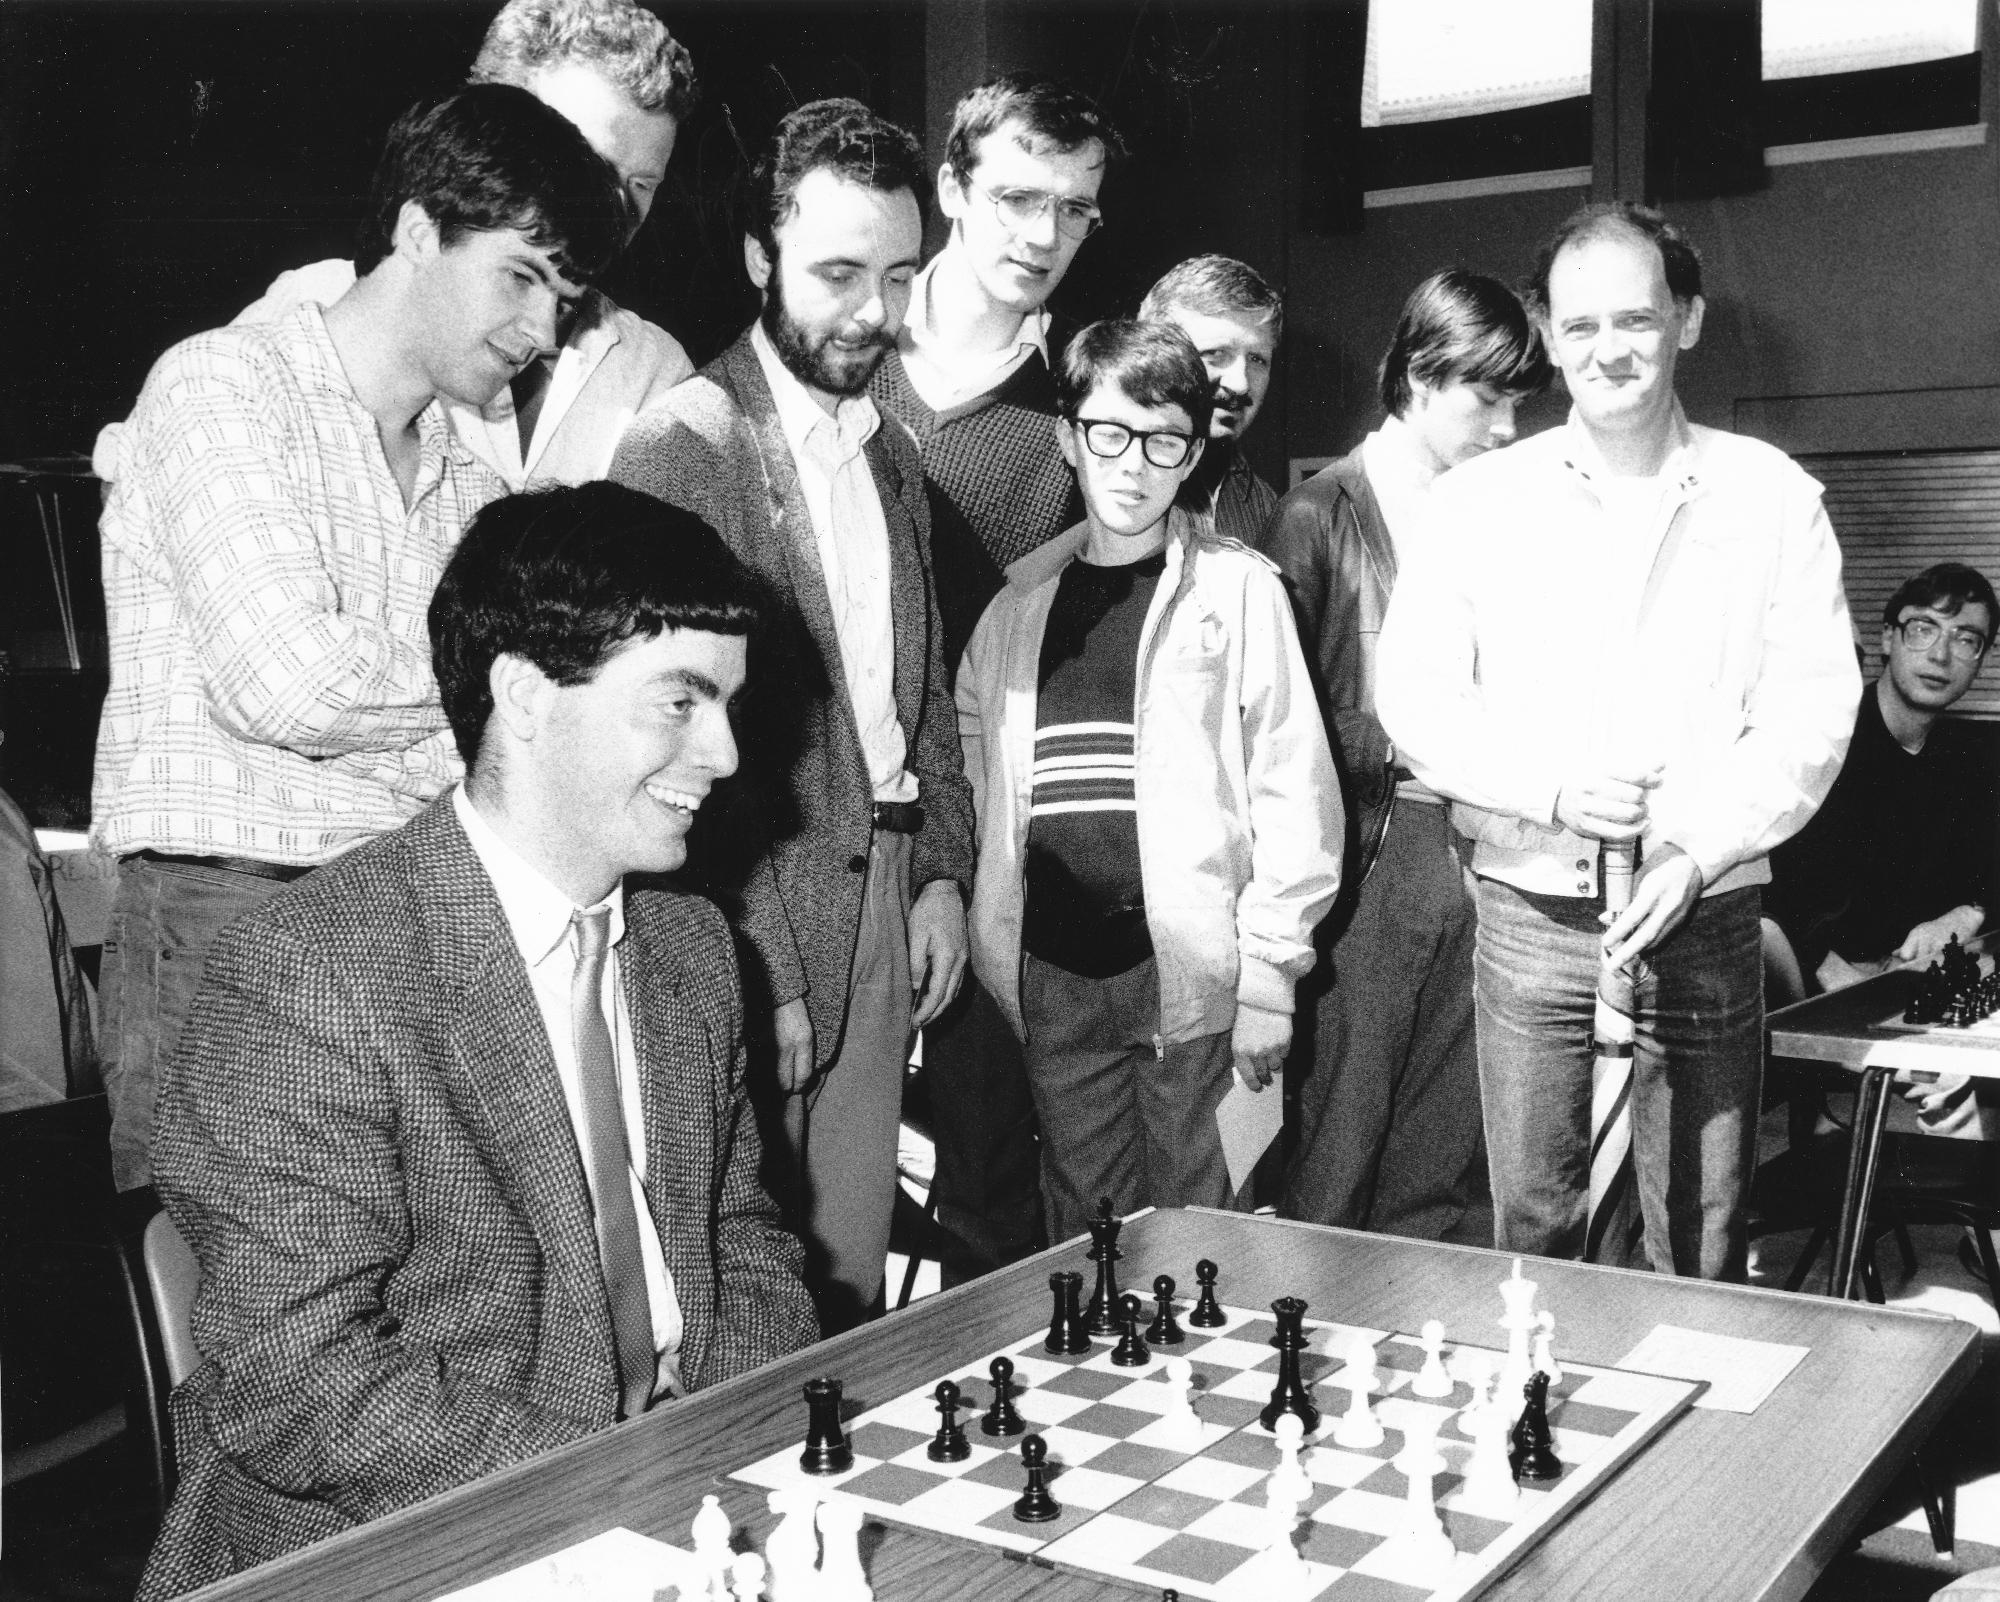 GM Paul Motwani has just played a brutal double check in the 1990 Scottish Lightning Championship. Photograph by Alistair Mulhearn